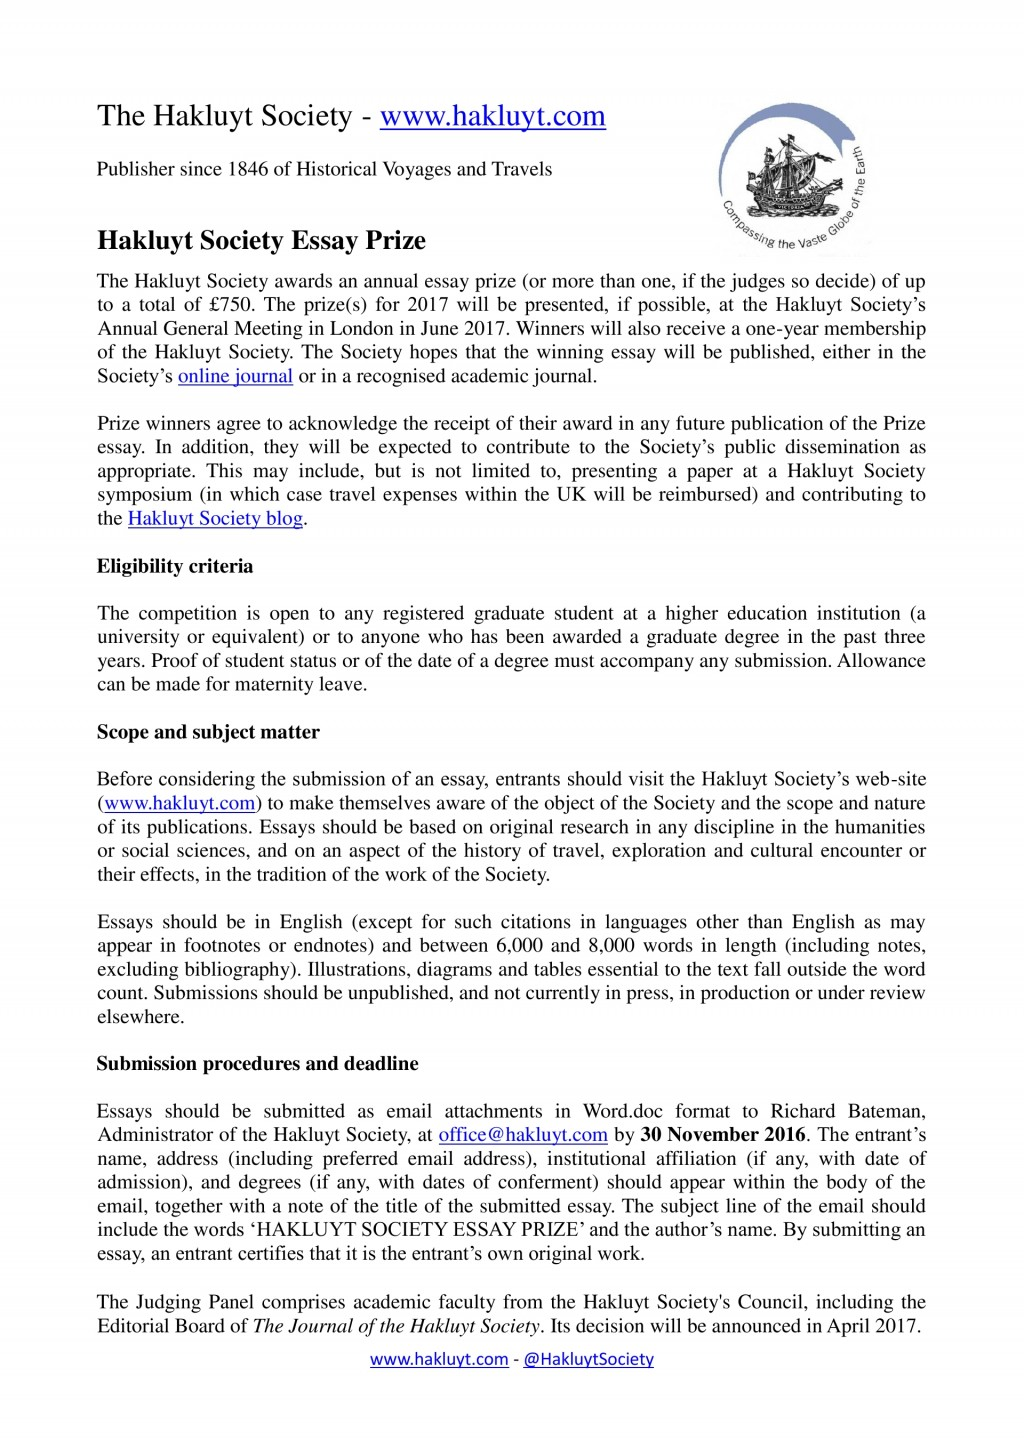 017 Travel Essay Hakluyt Society Prize The Example Text Journal Sample Tagalog Photo Examples Experience Pdf Writing Unique Definition Submissions Large